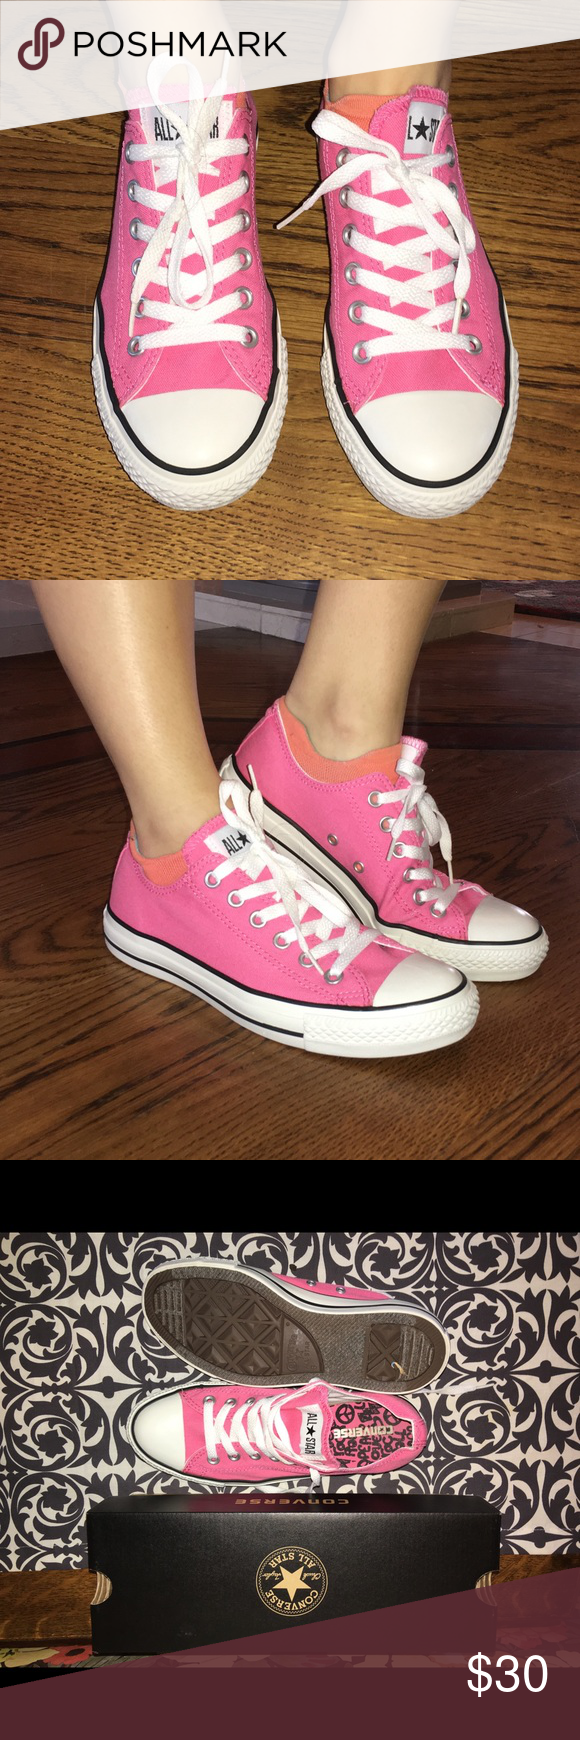 Authentic Converse Athletic Shoes! Perfect for your summer wardrobe!  Pre-owned. Do show signs of wear as shown in the pictures. Ladies size 8. Bright pink. Converse Shoes